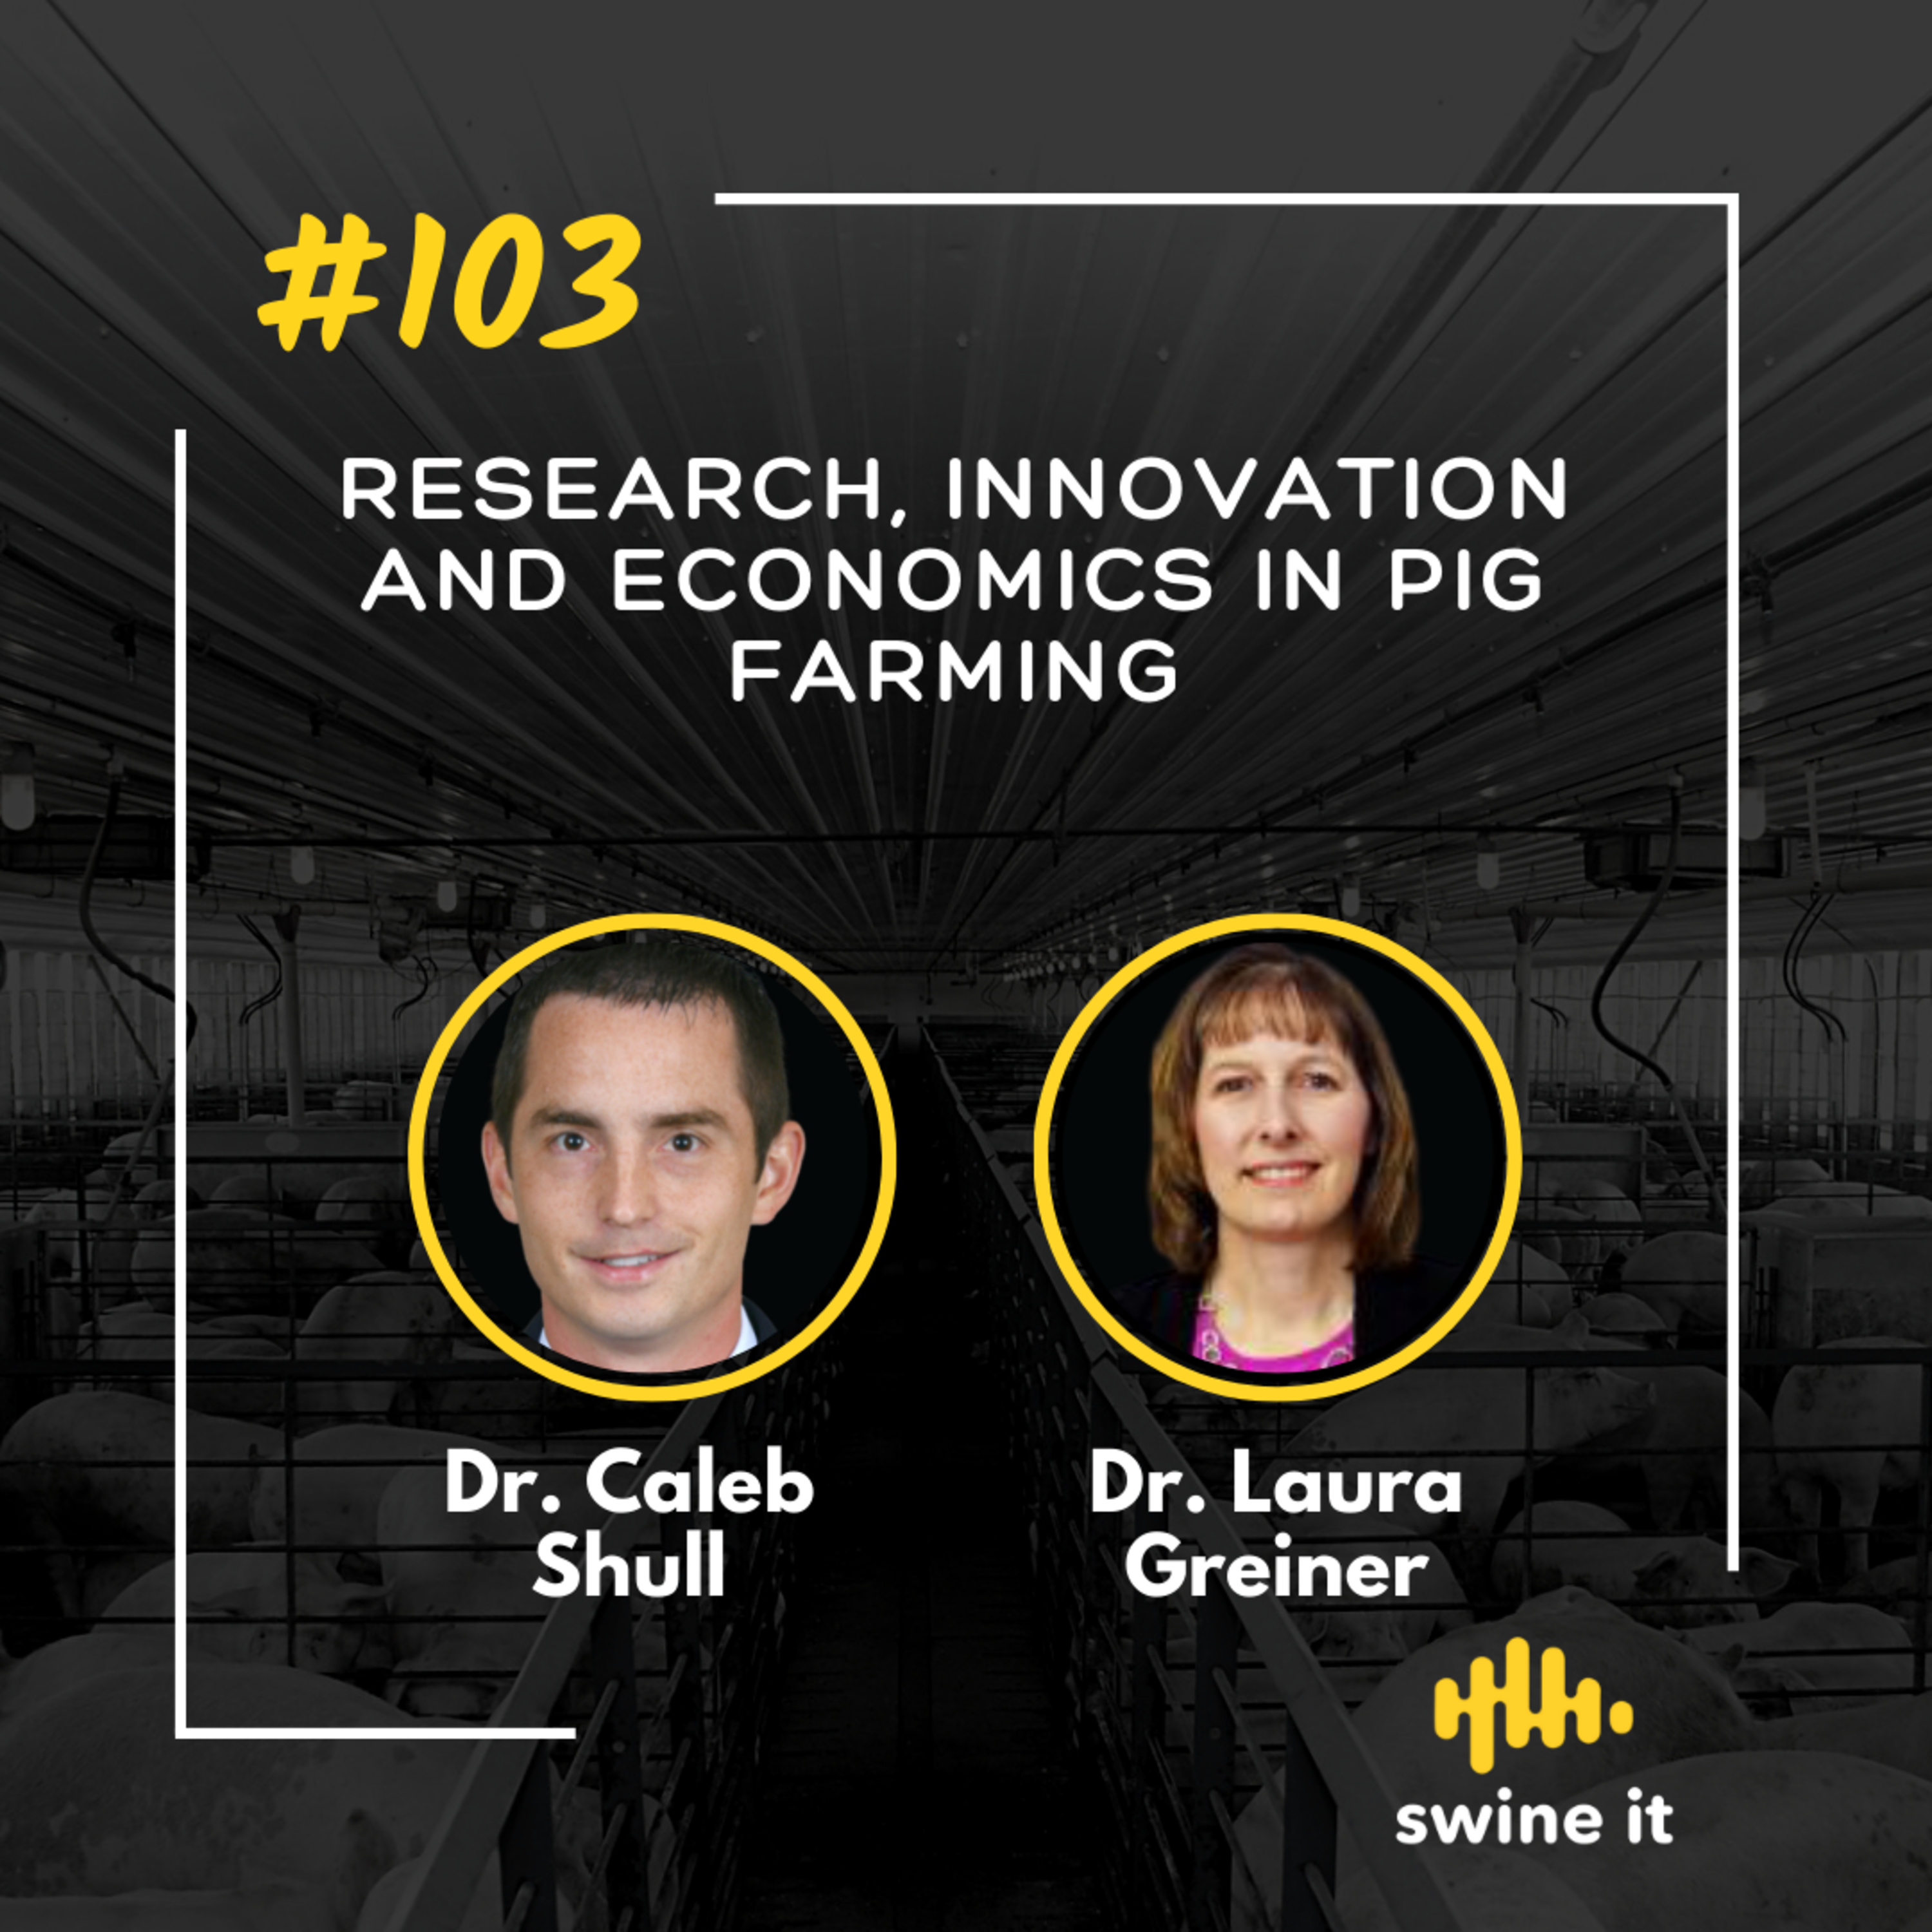 Research, innovation and economics in pig farming - Caleb Shull